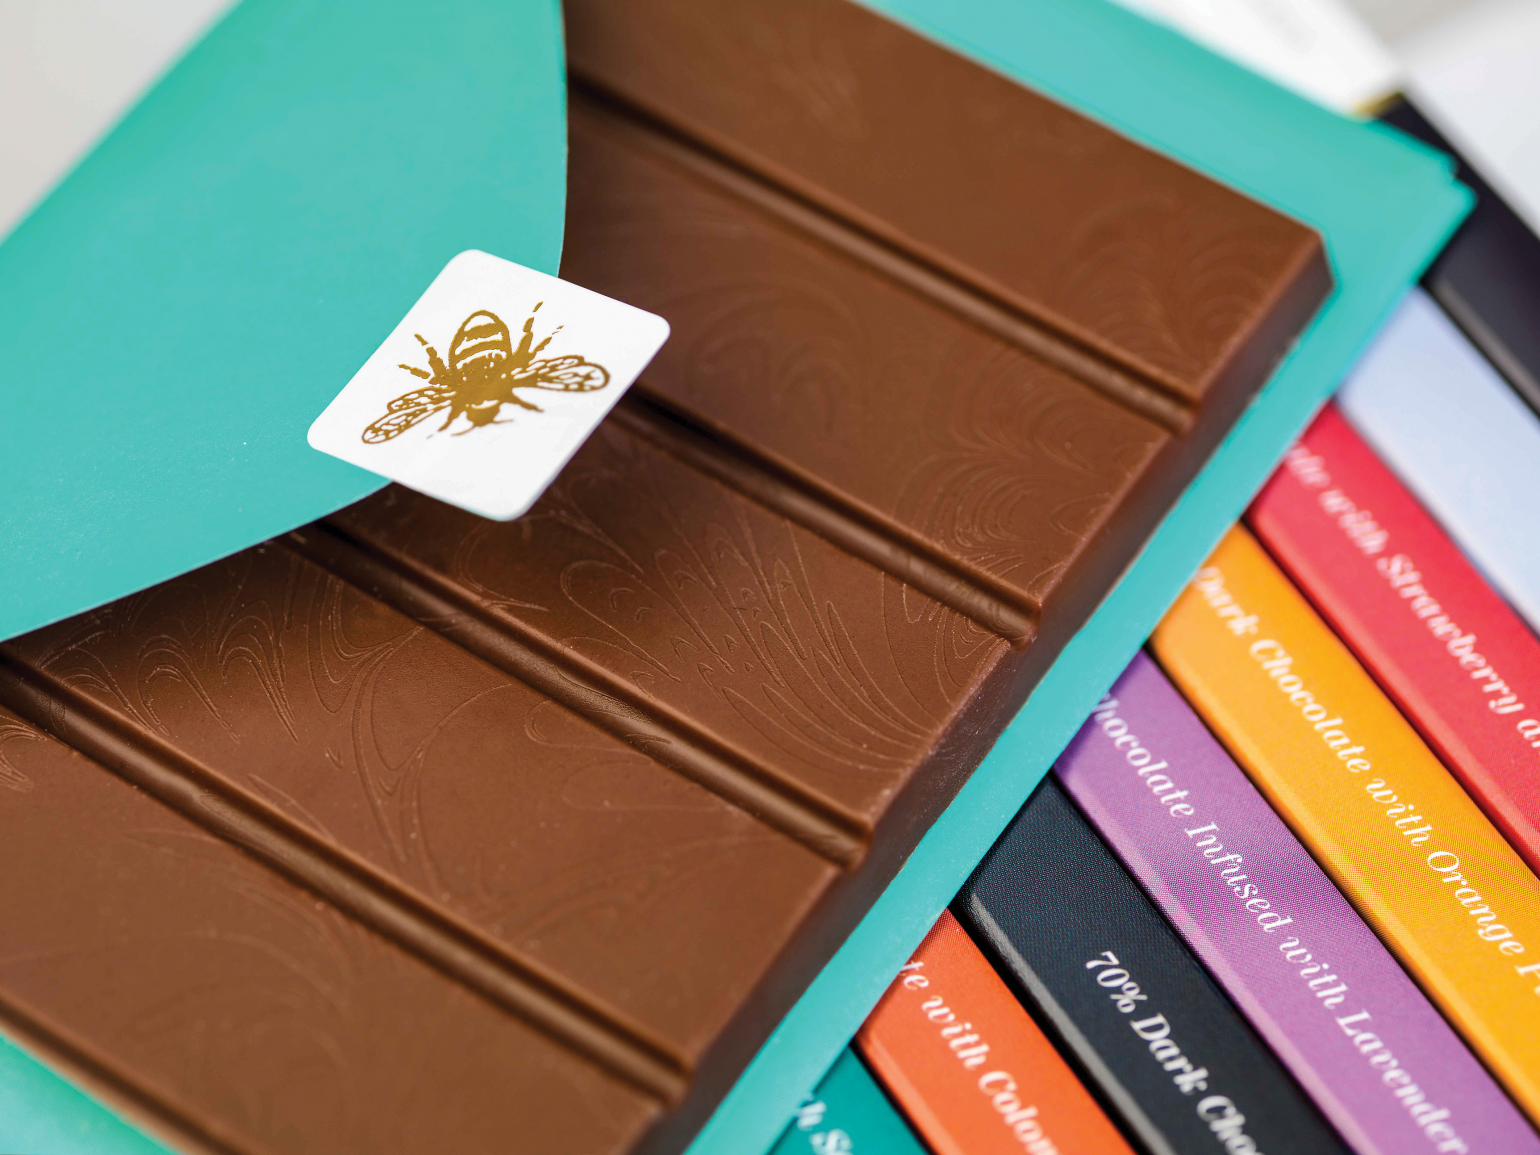 Otherway Library Chocs10142